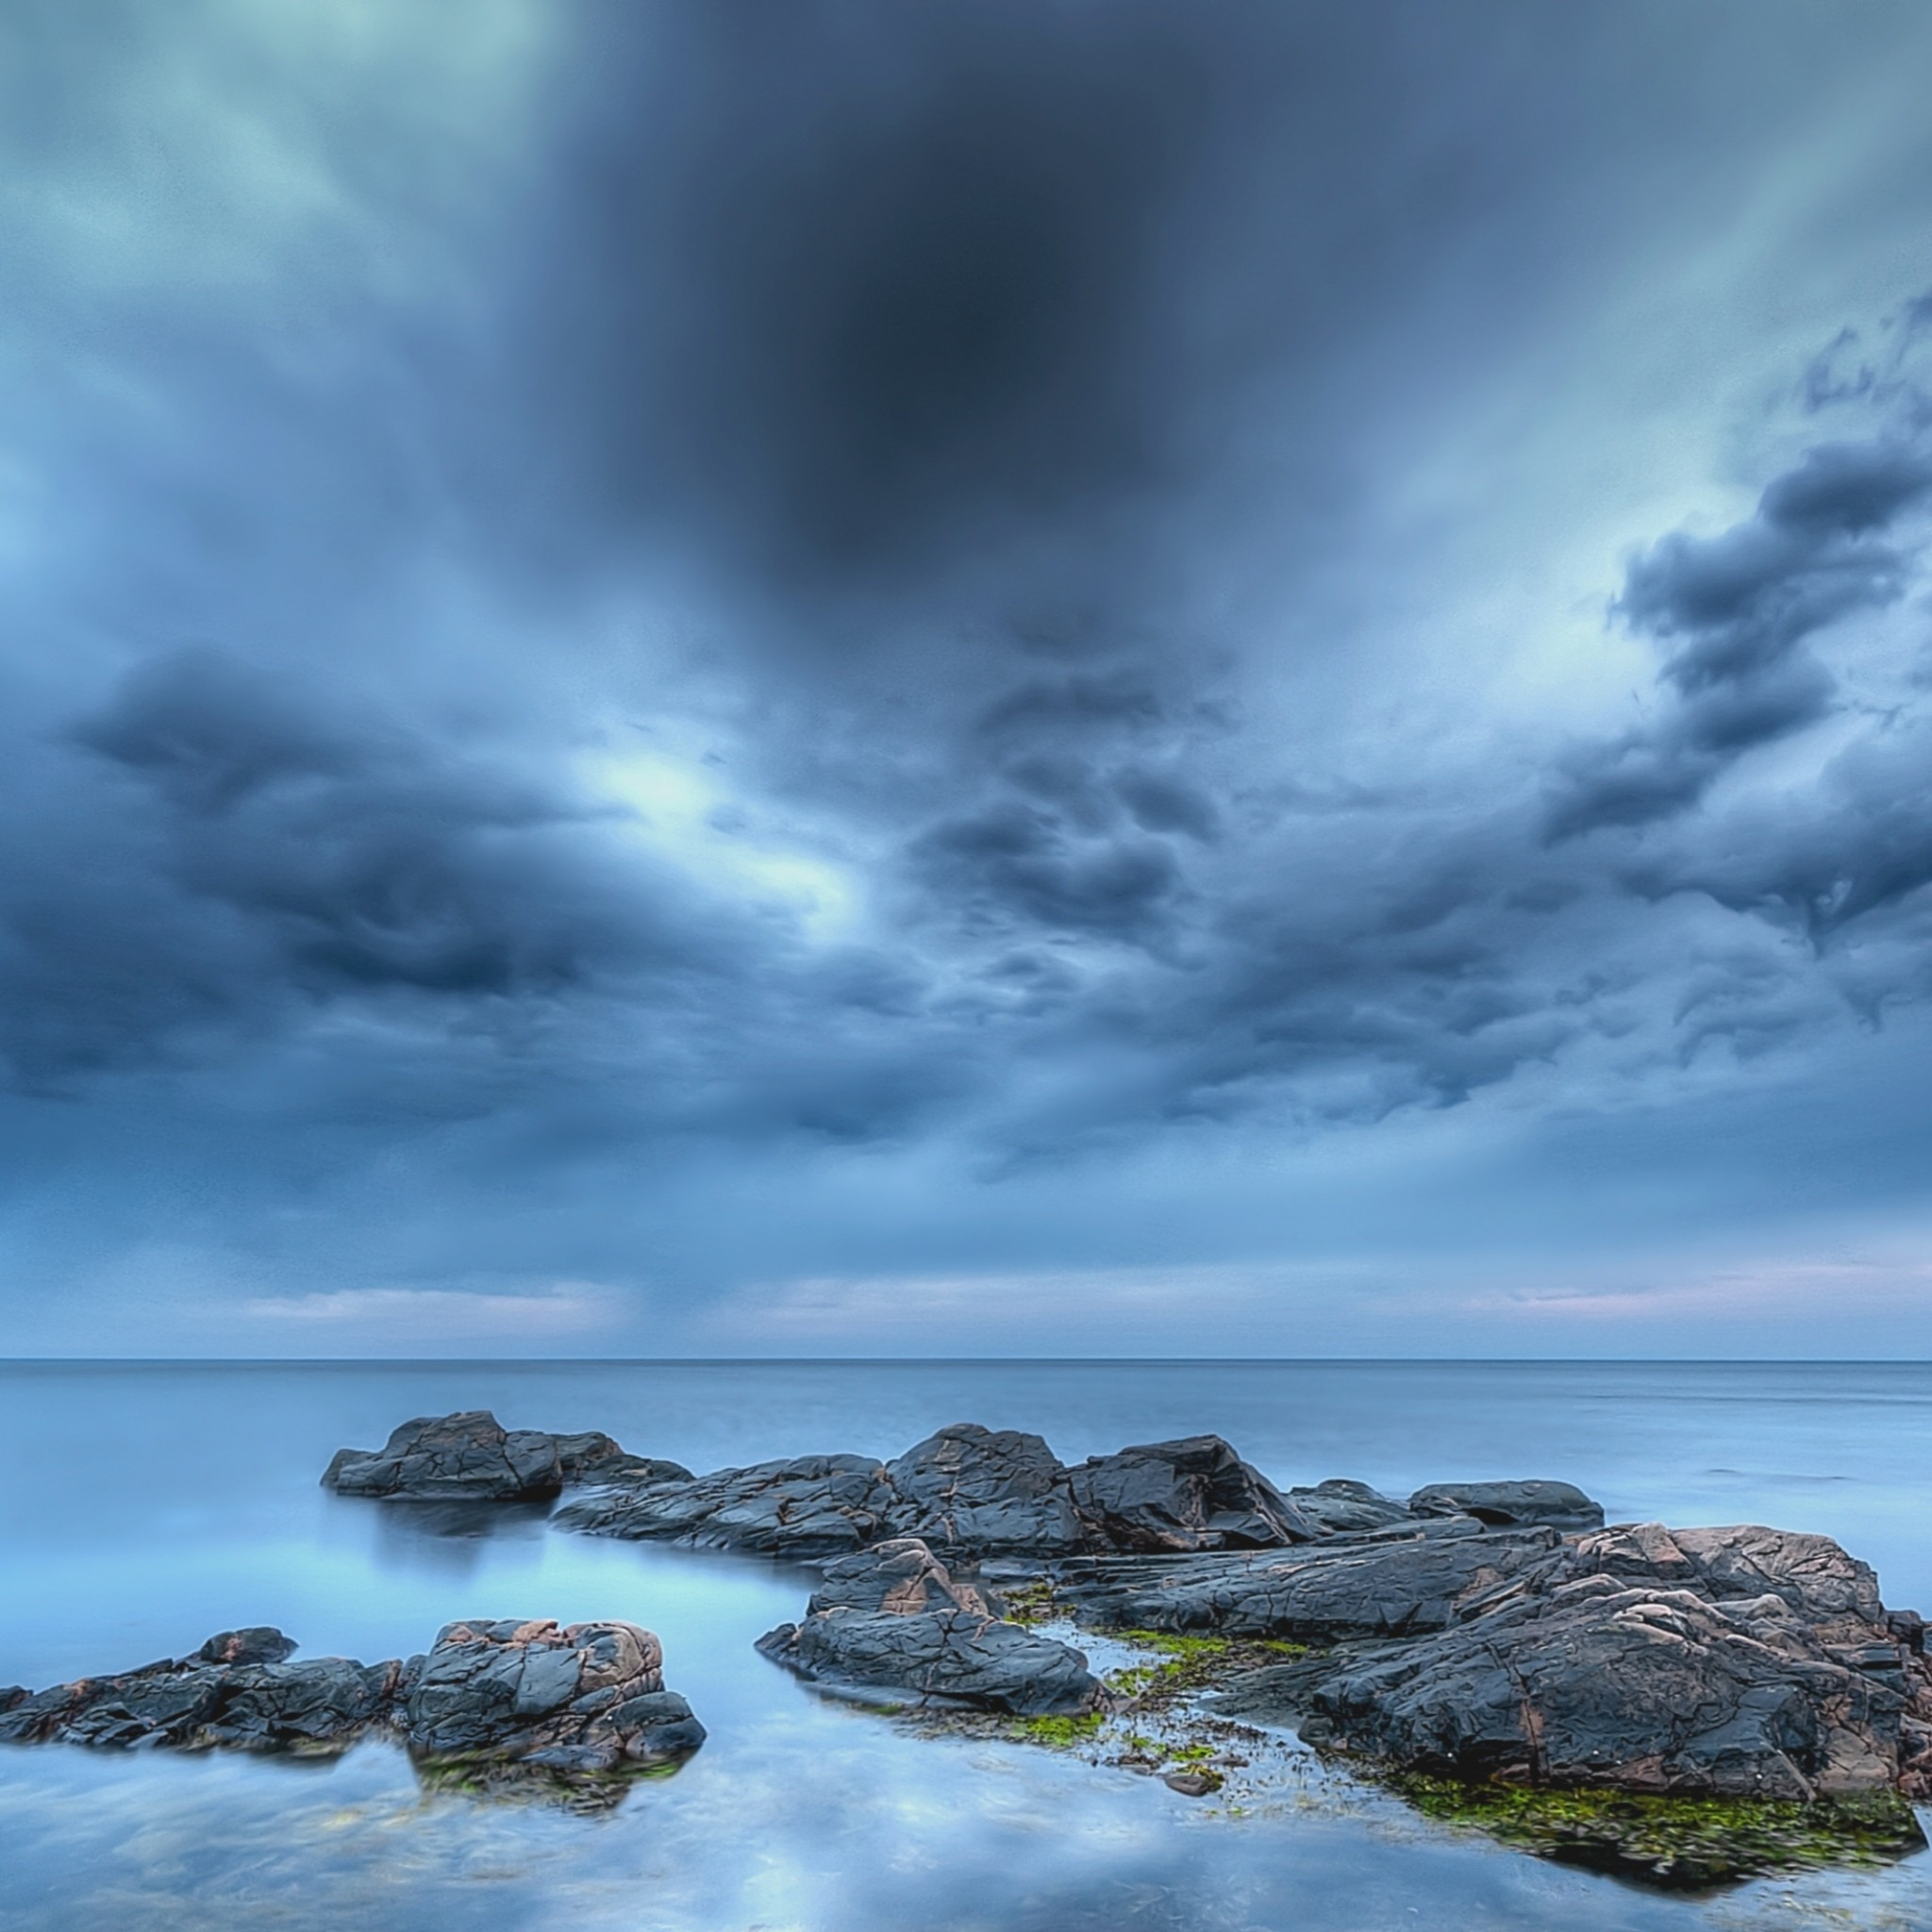 Sky Wallpapers: Cloudy Background ·① Download Free Stunning High